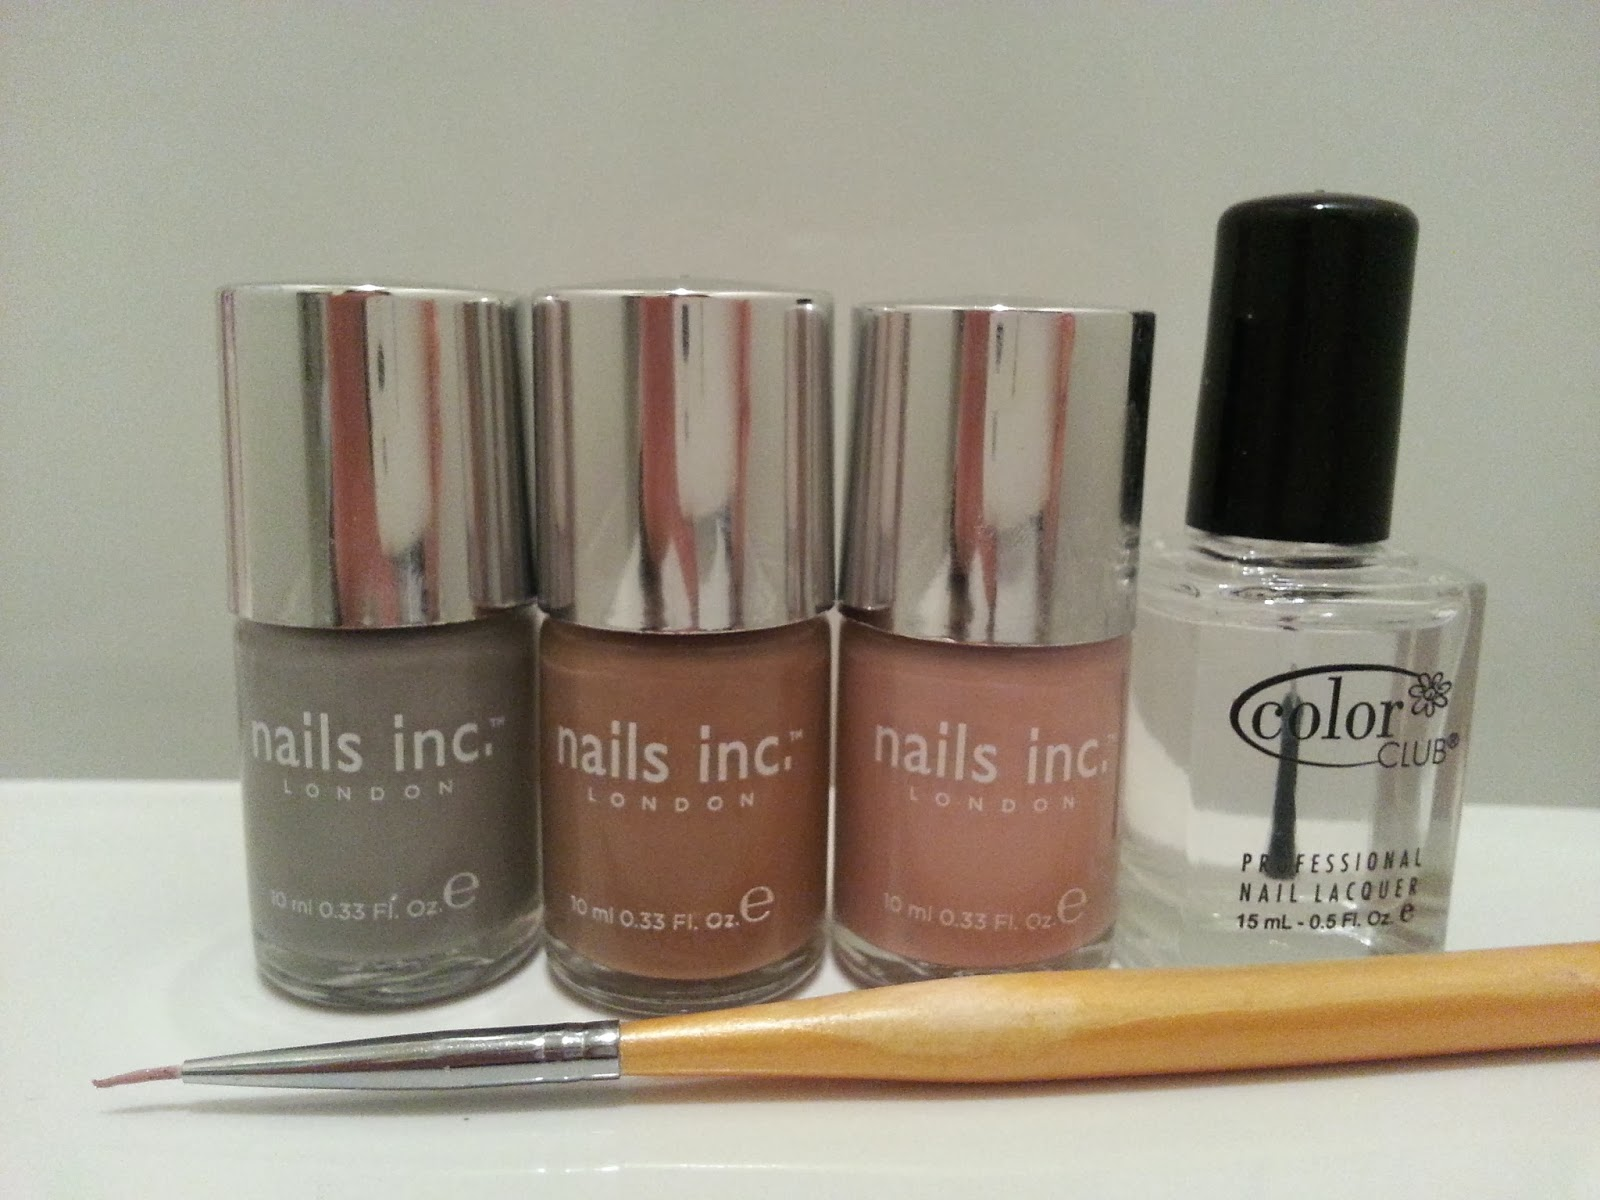 nails-inc-nudes-nail-art